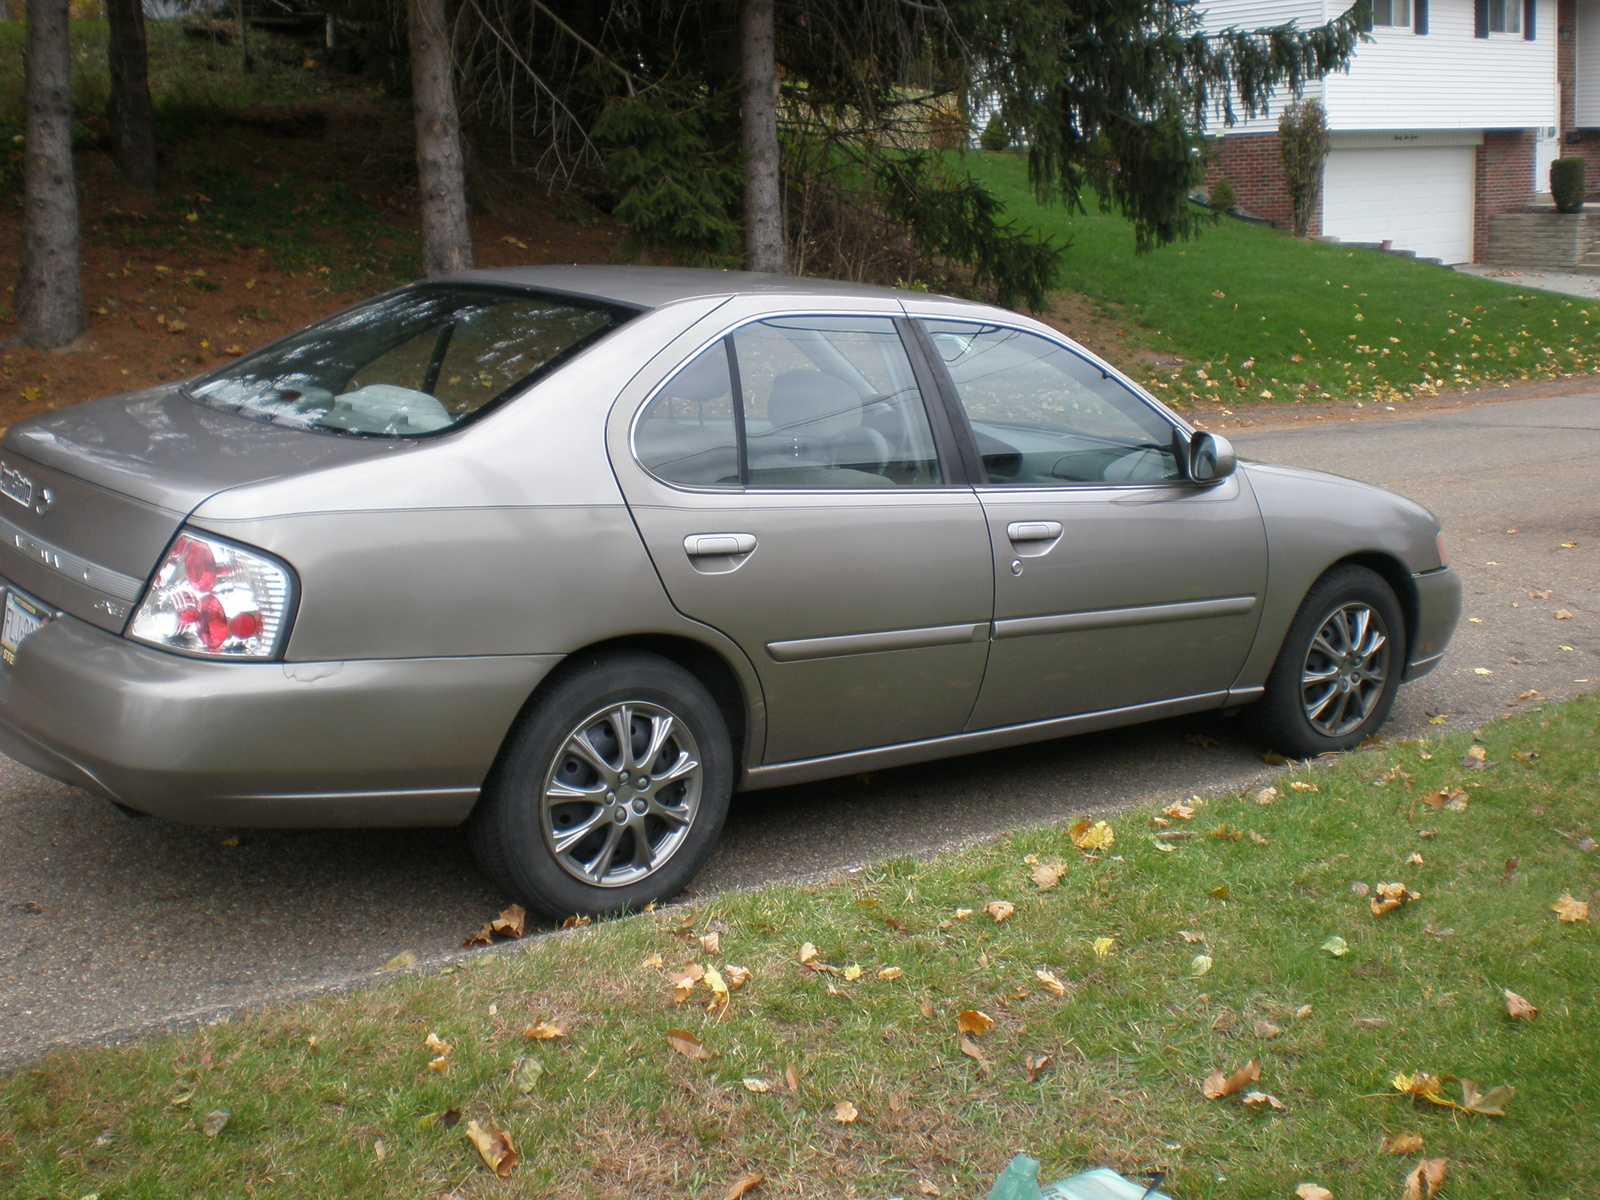 2000 Nissan altima gxe specifications #1